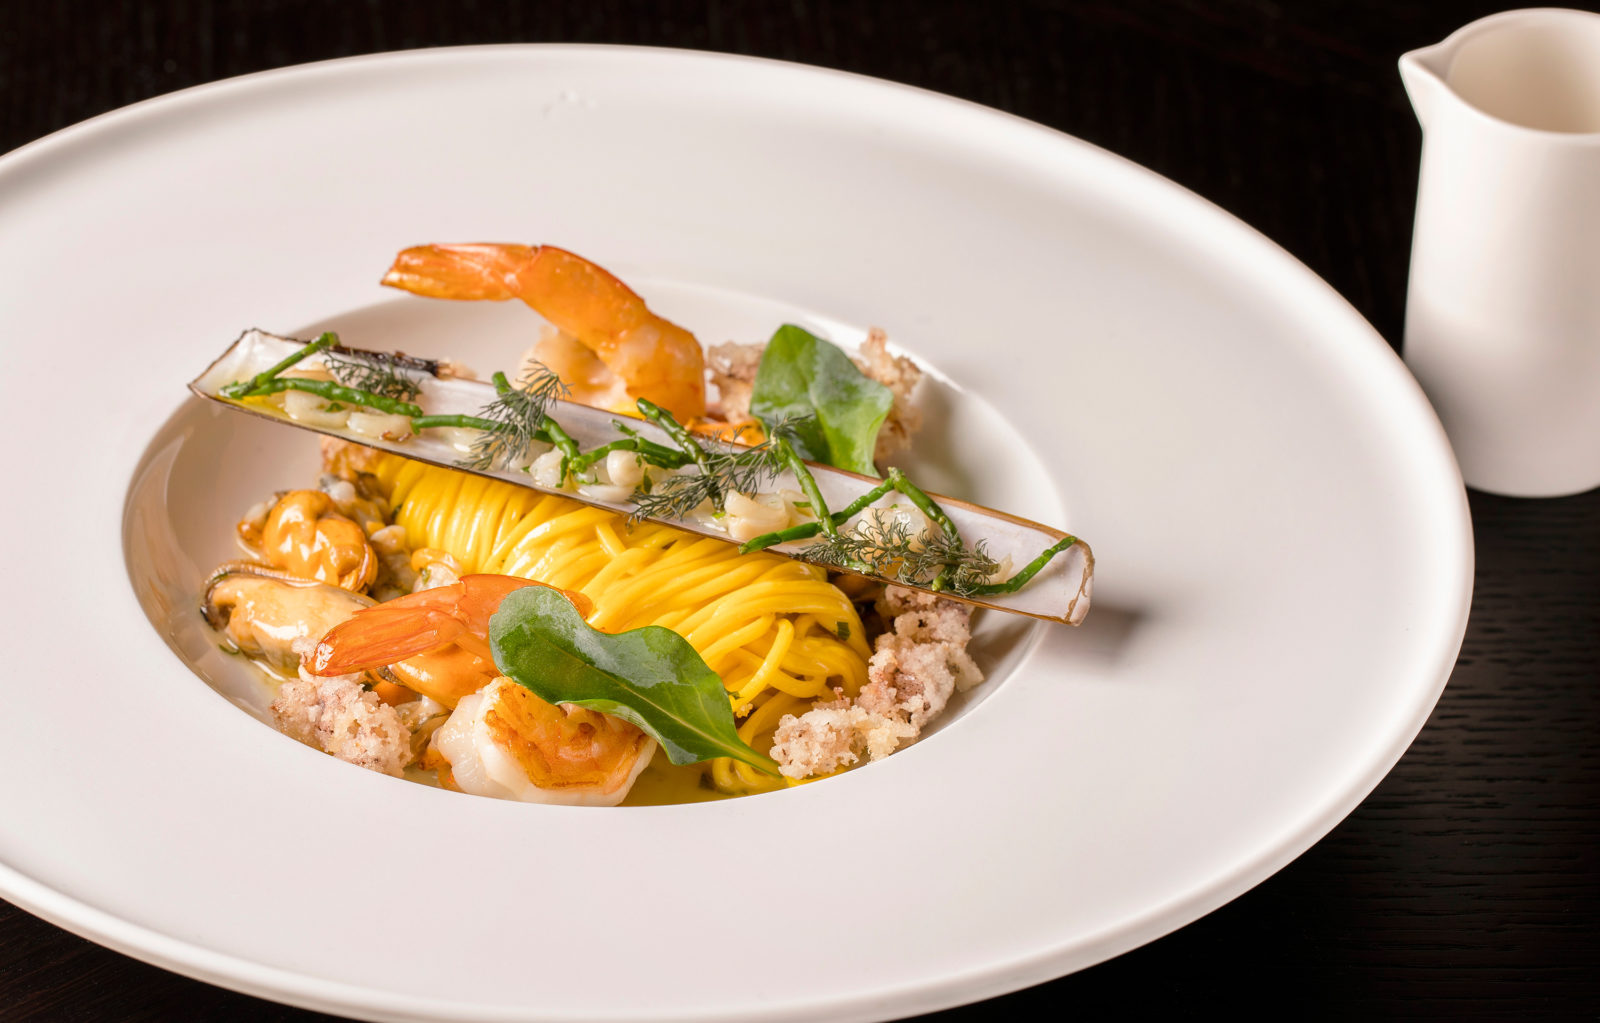 Plush Mayfair Newcomer The Betterment Needs to Practice What It Preaches